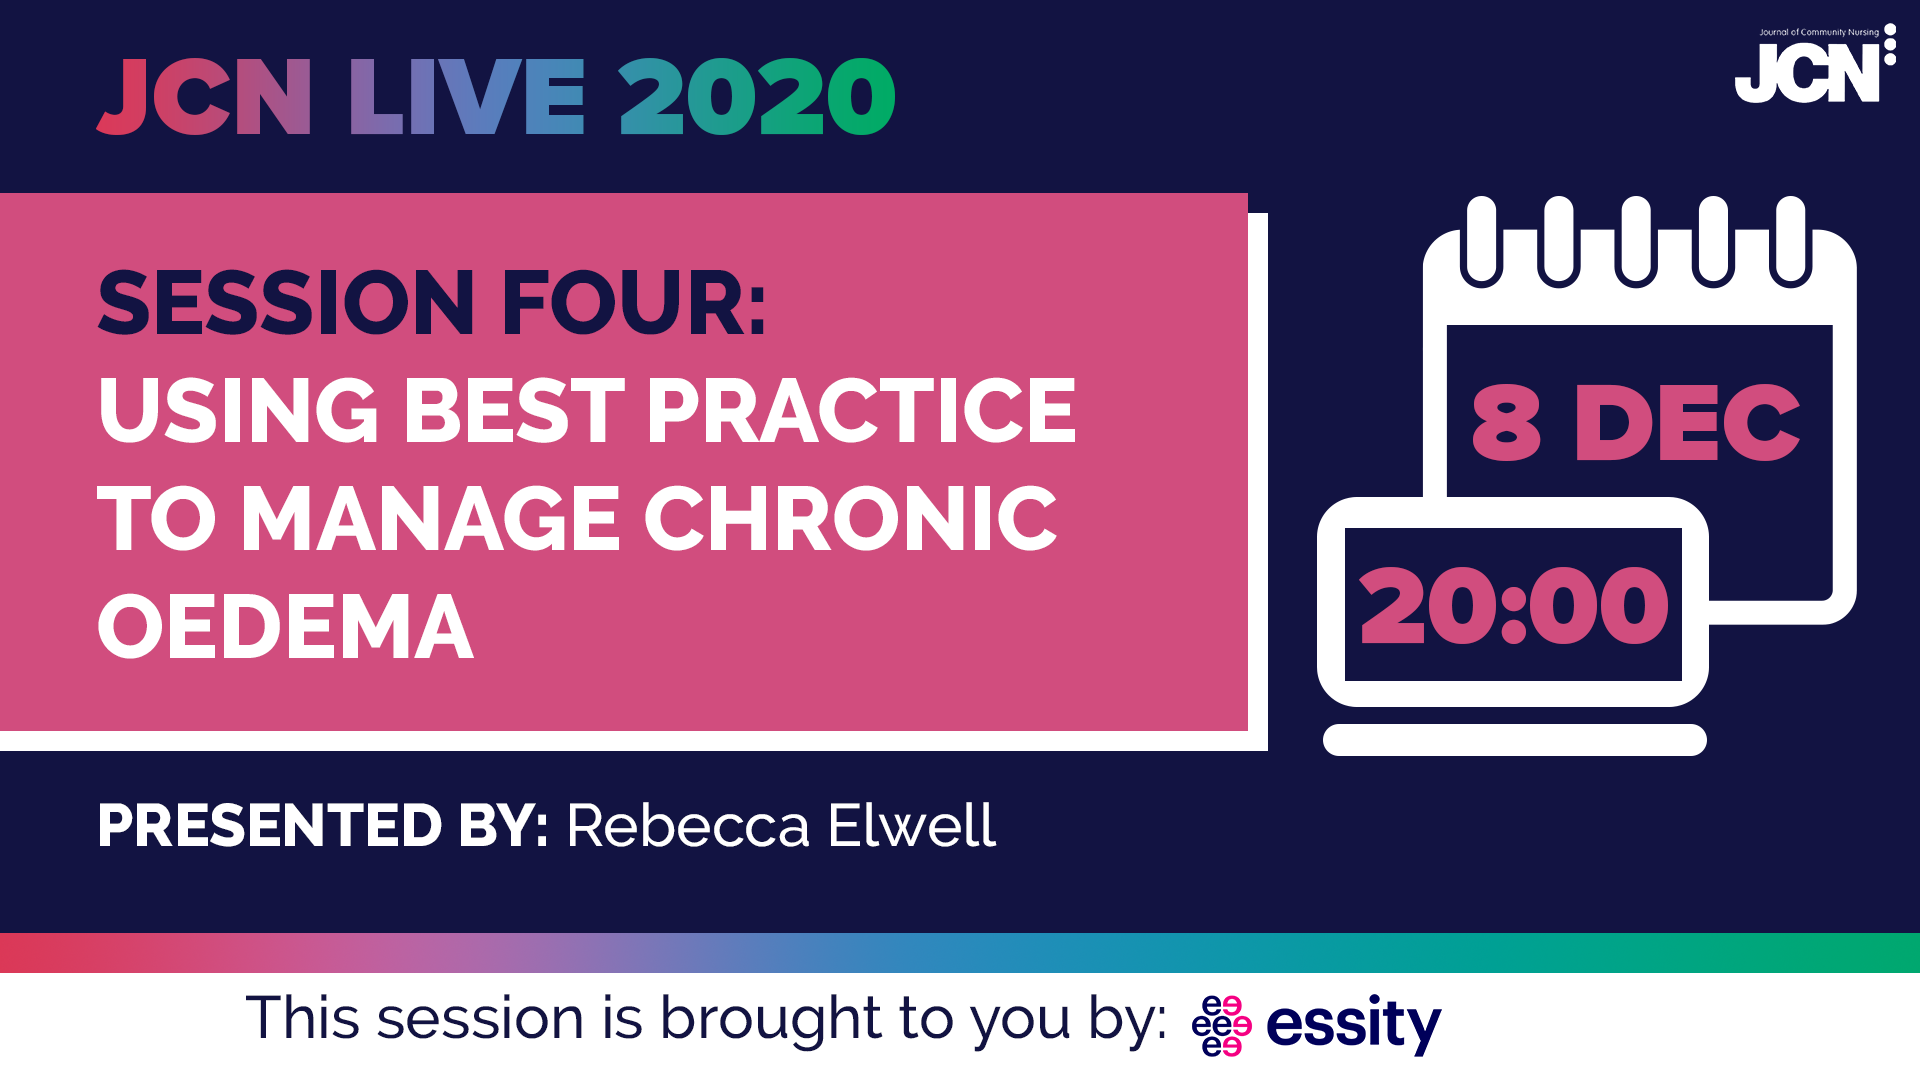 JCN Live 2020 - Using best practice to manage chronic oedema